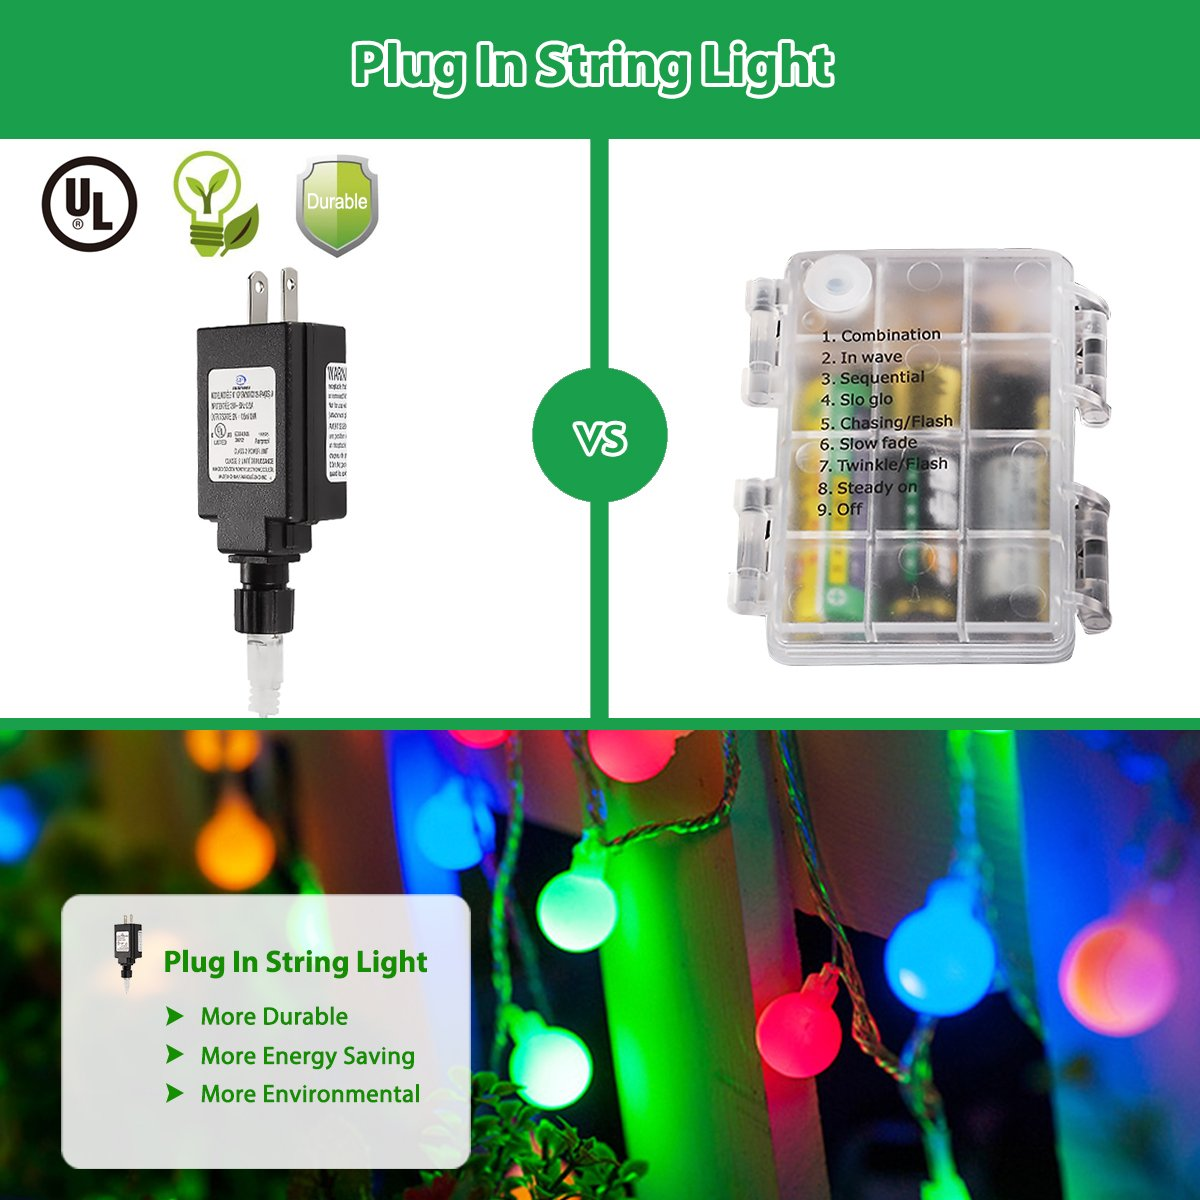 Globe String Lights, 100 LED Colored Fairy Lights Waterproof, String Lights Plug in, 44 Ft, Patio String Lights with Remote Control for Patio Garden Party Xmas Tree Wedding Decoration by Smart&green Lighting (Image #3)